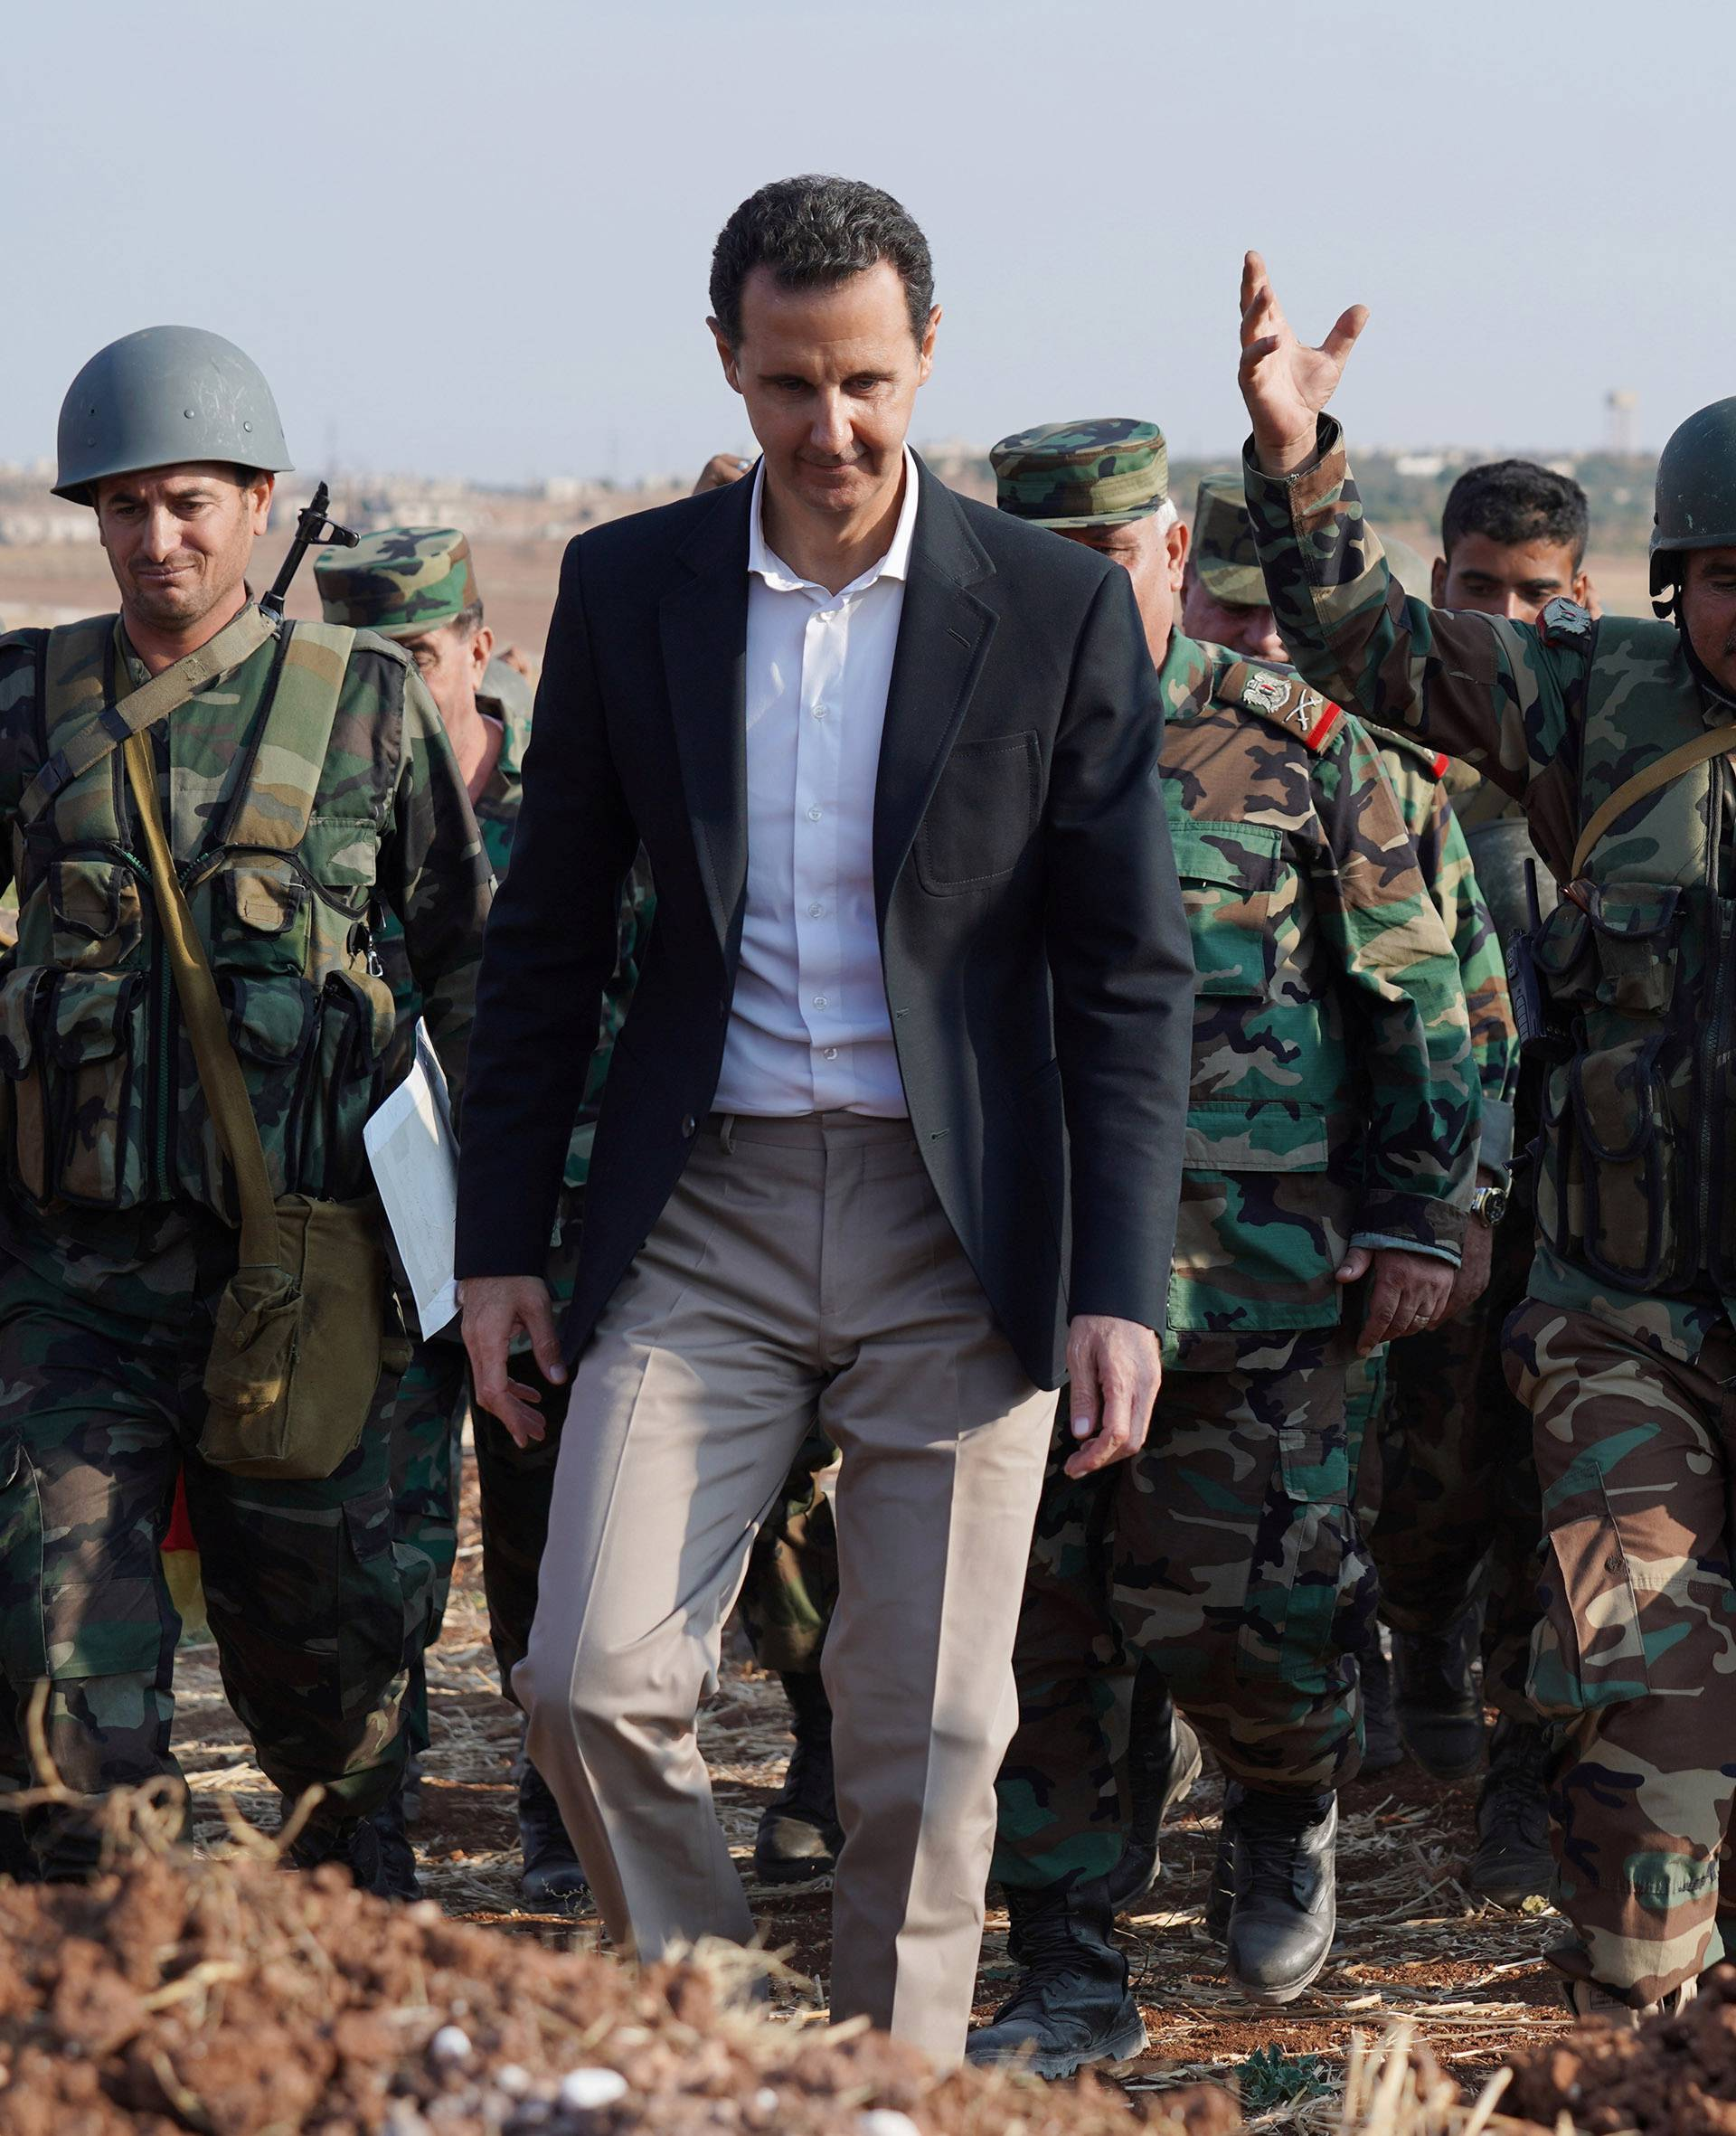 Syrian President Bashar al Assad visits Syrian army troops in war-torn northwestern Idlib province